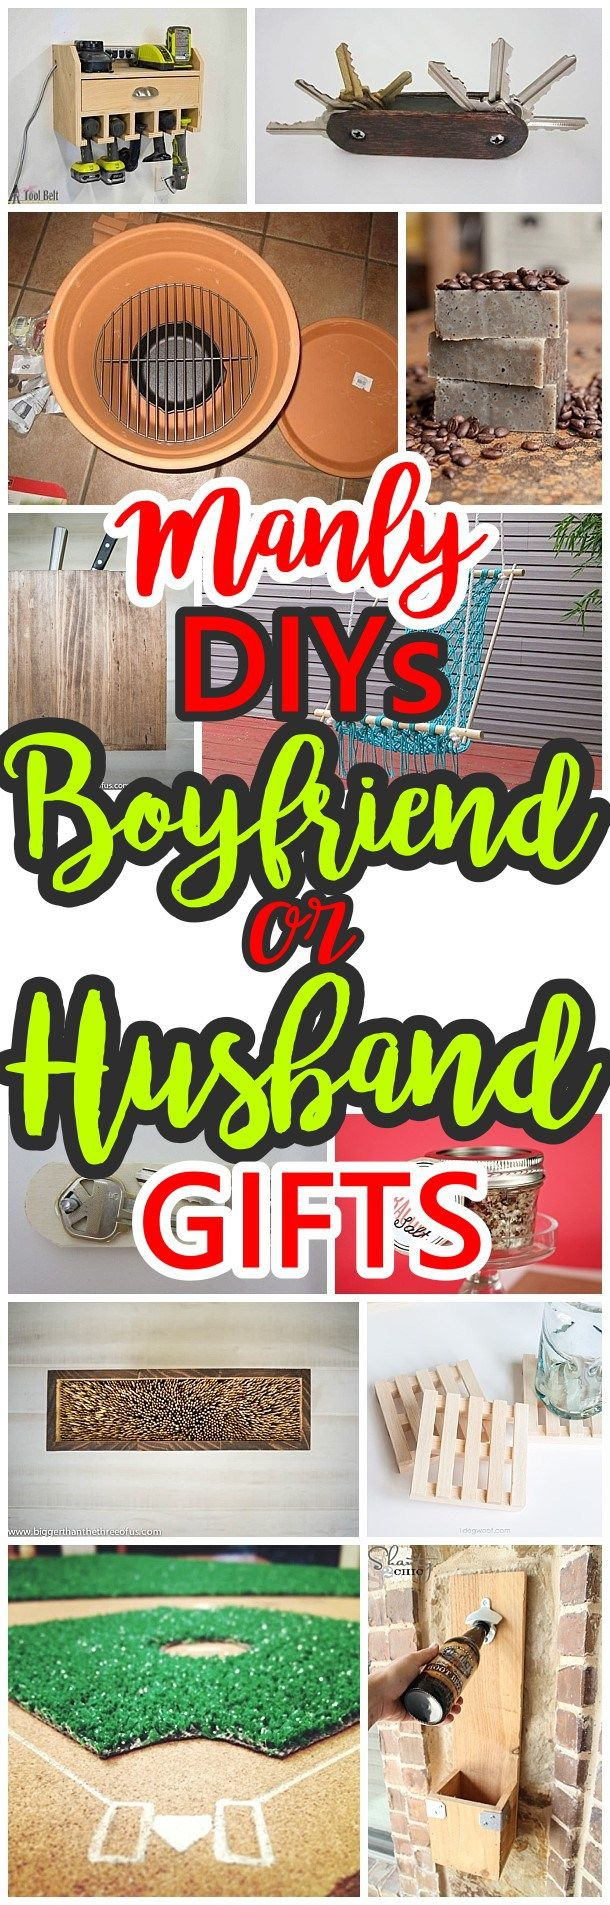 Manly do it yourself boyfriend and husband gift ideas masculine do it yourself manly gift ideas for boyfriends husbands sons brothers uncles solutioingenieria Images